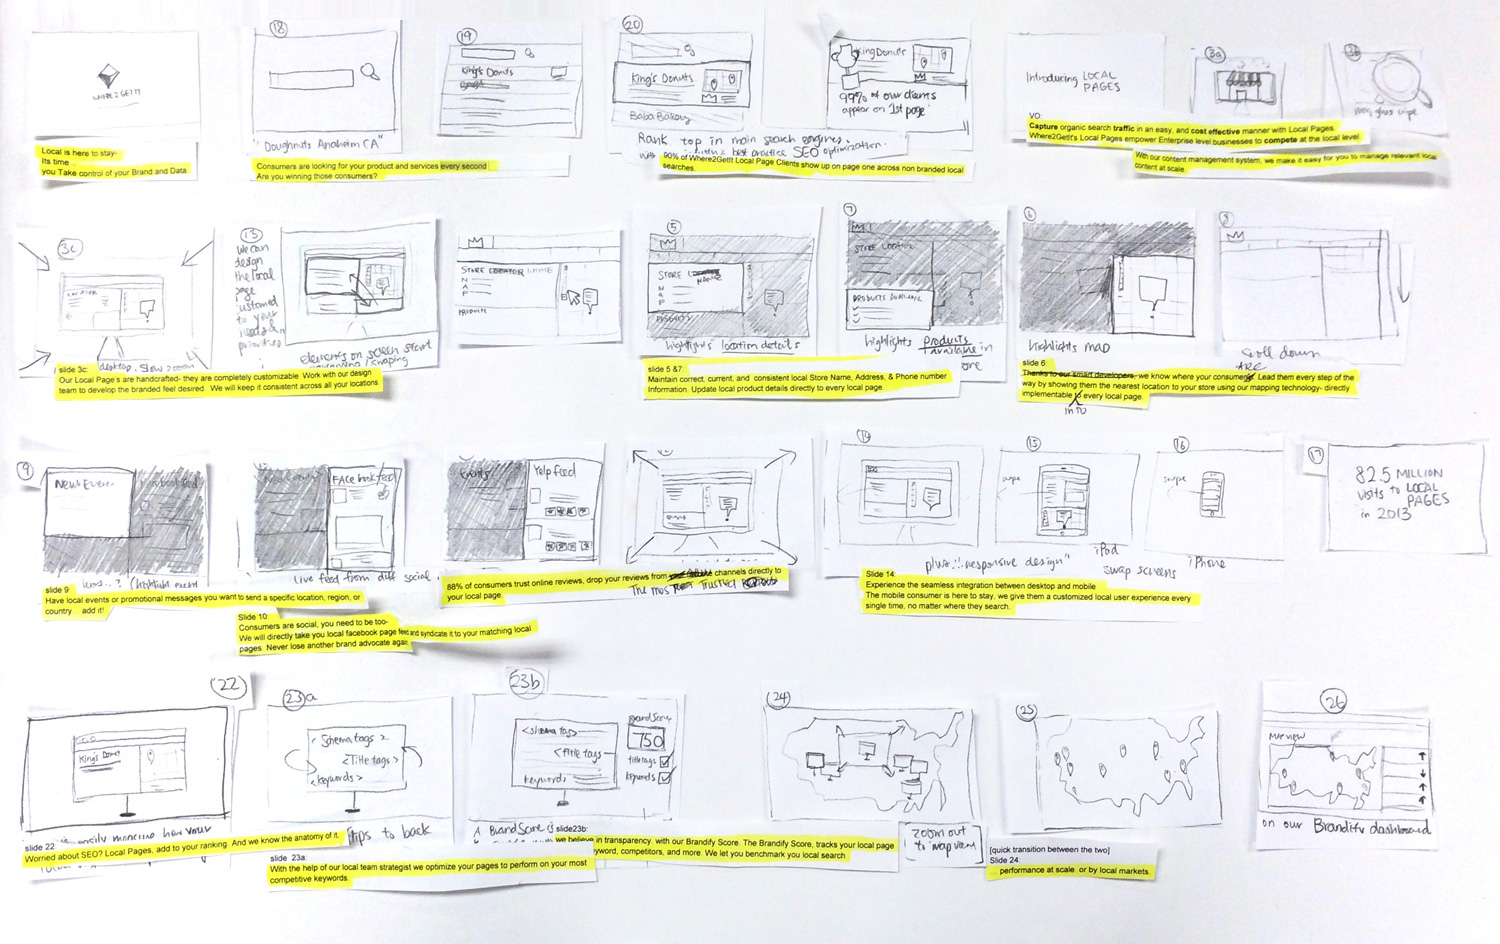 Working with the Brandify team to build initial storyboard and script.